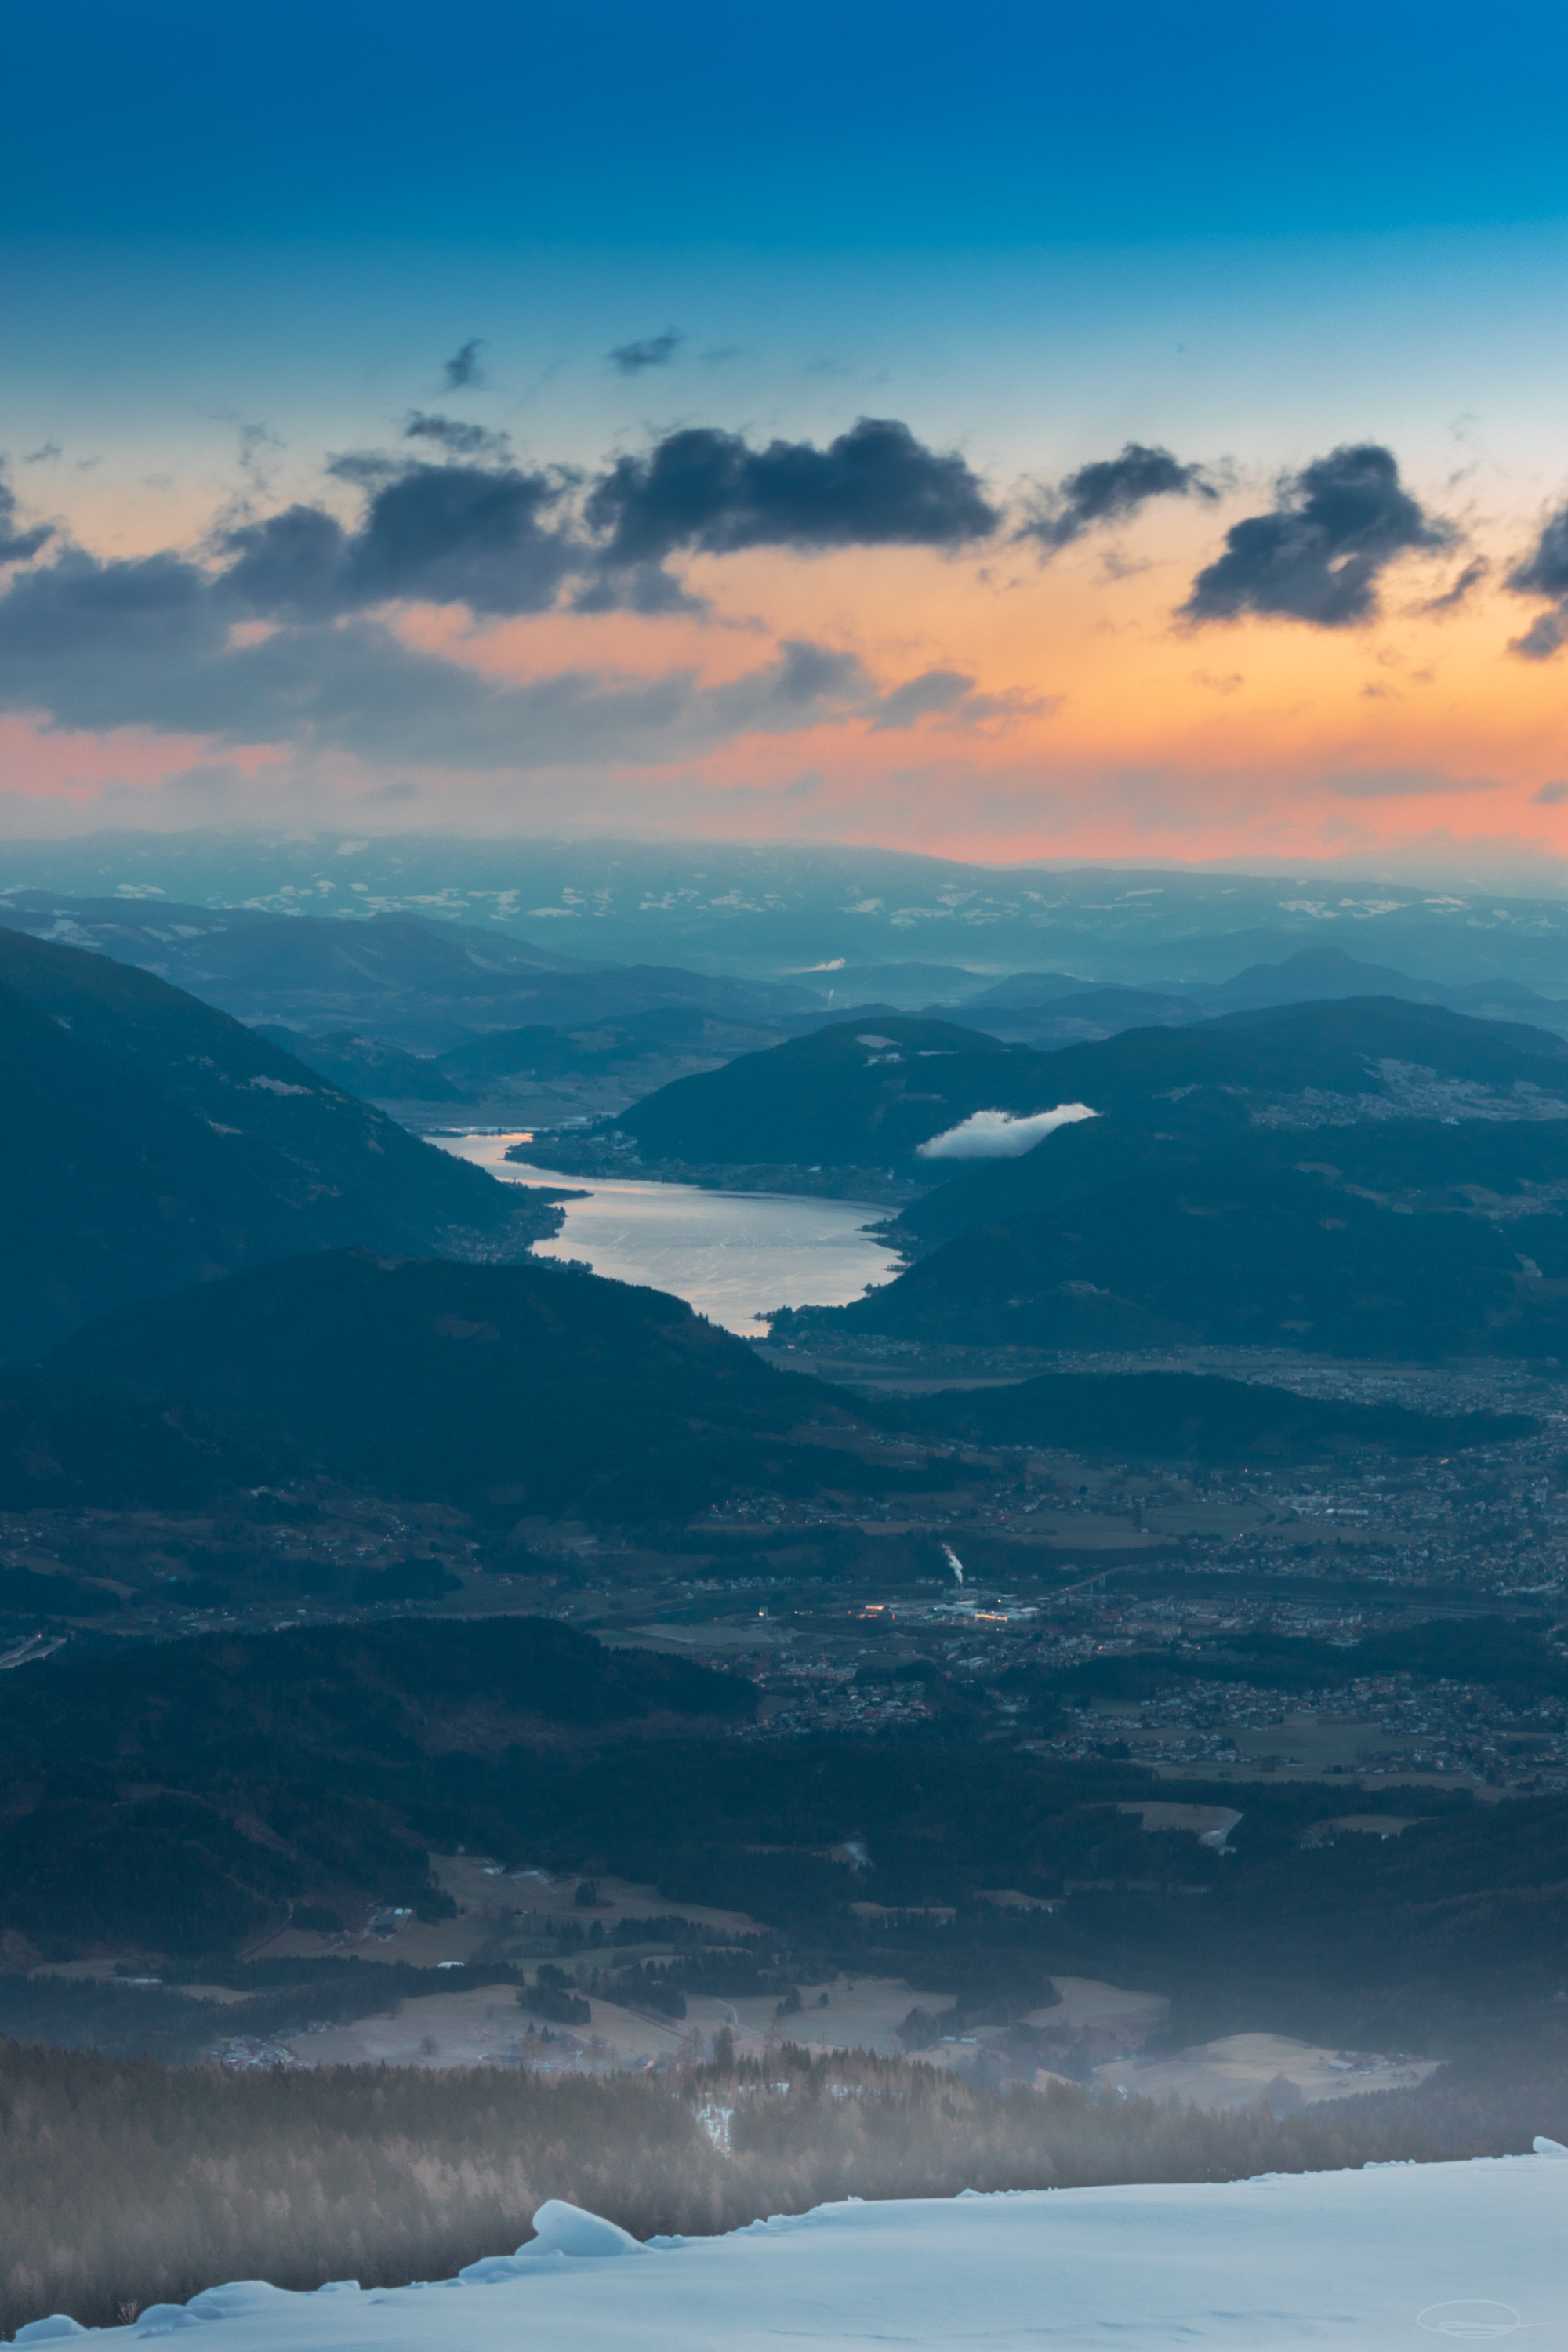 Sunrise View from the Dobratsch Mountain - City of Villach and Lake Ossiach